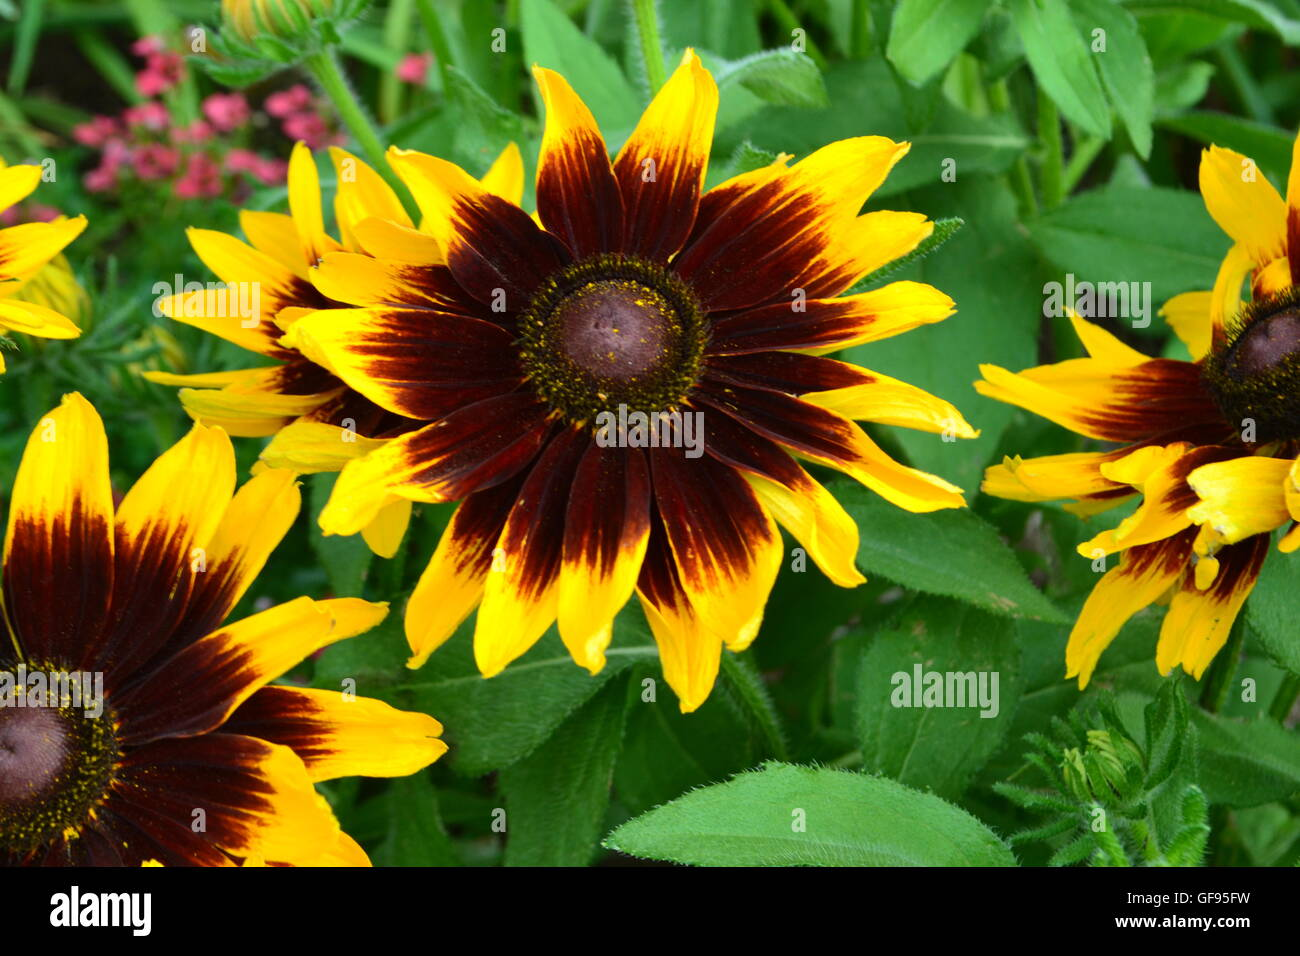 Yellow flower with brown center stock photos yellow flower with close up of brown flower with brown center and yellow tips stock image mightylinksfo